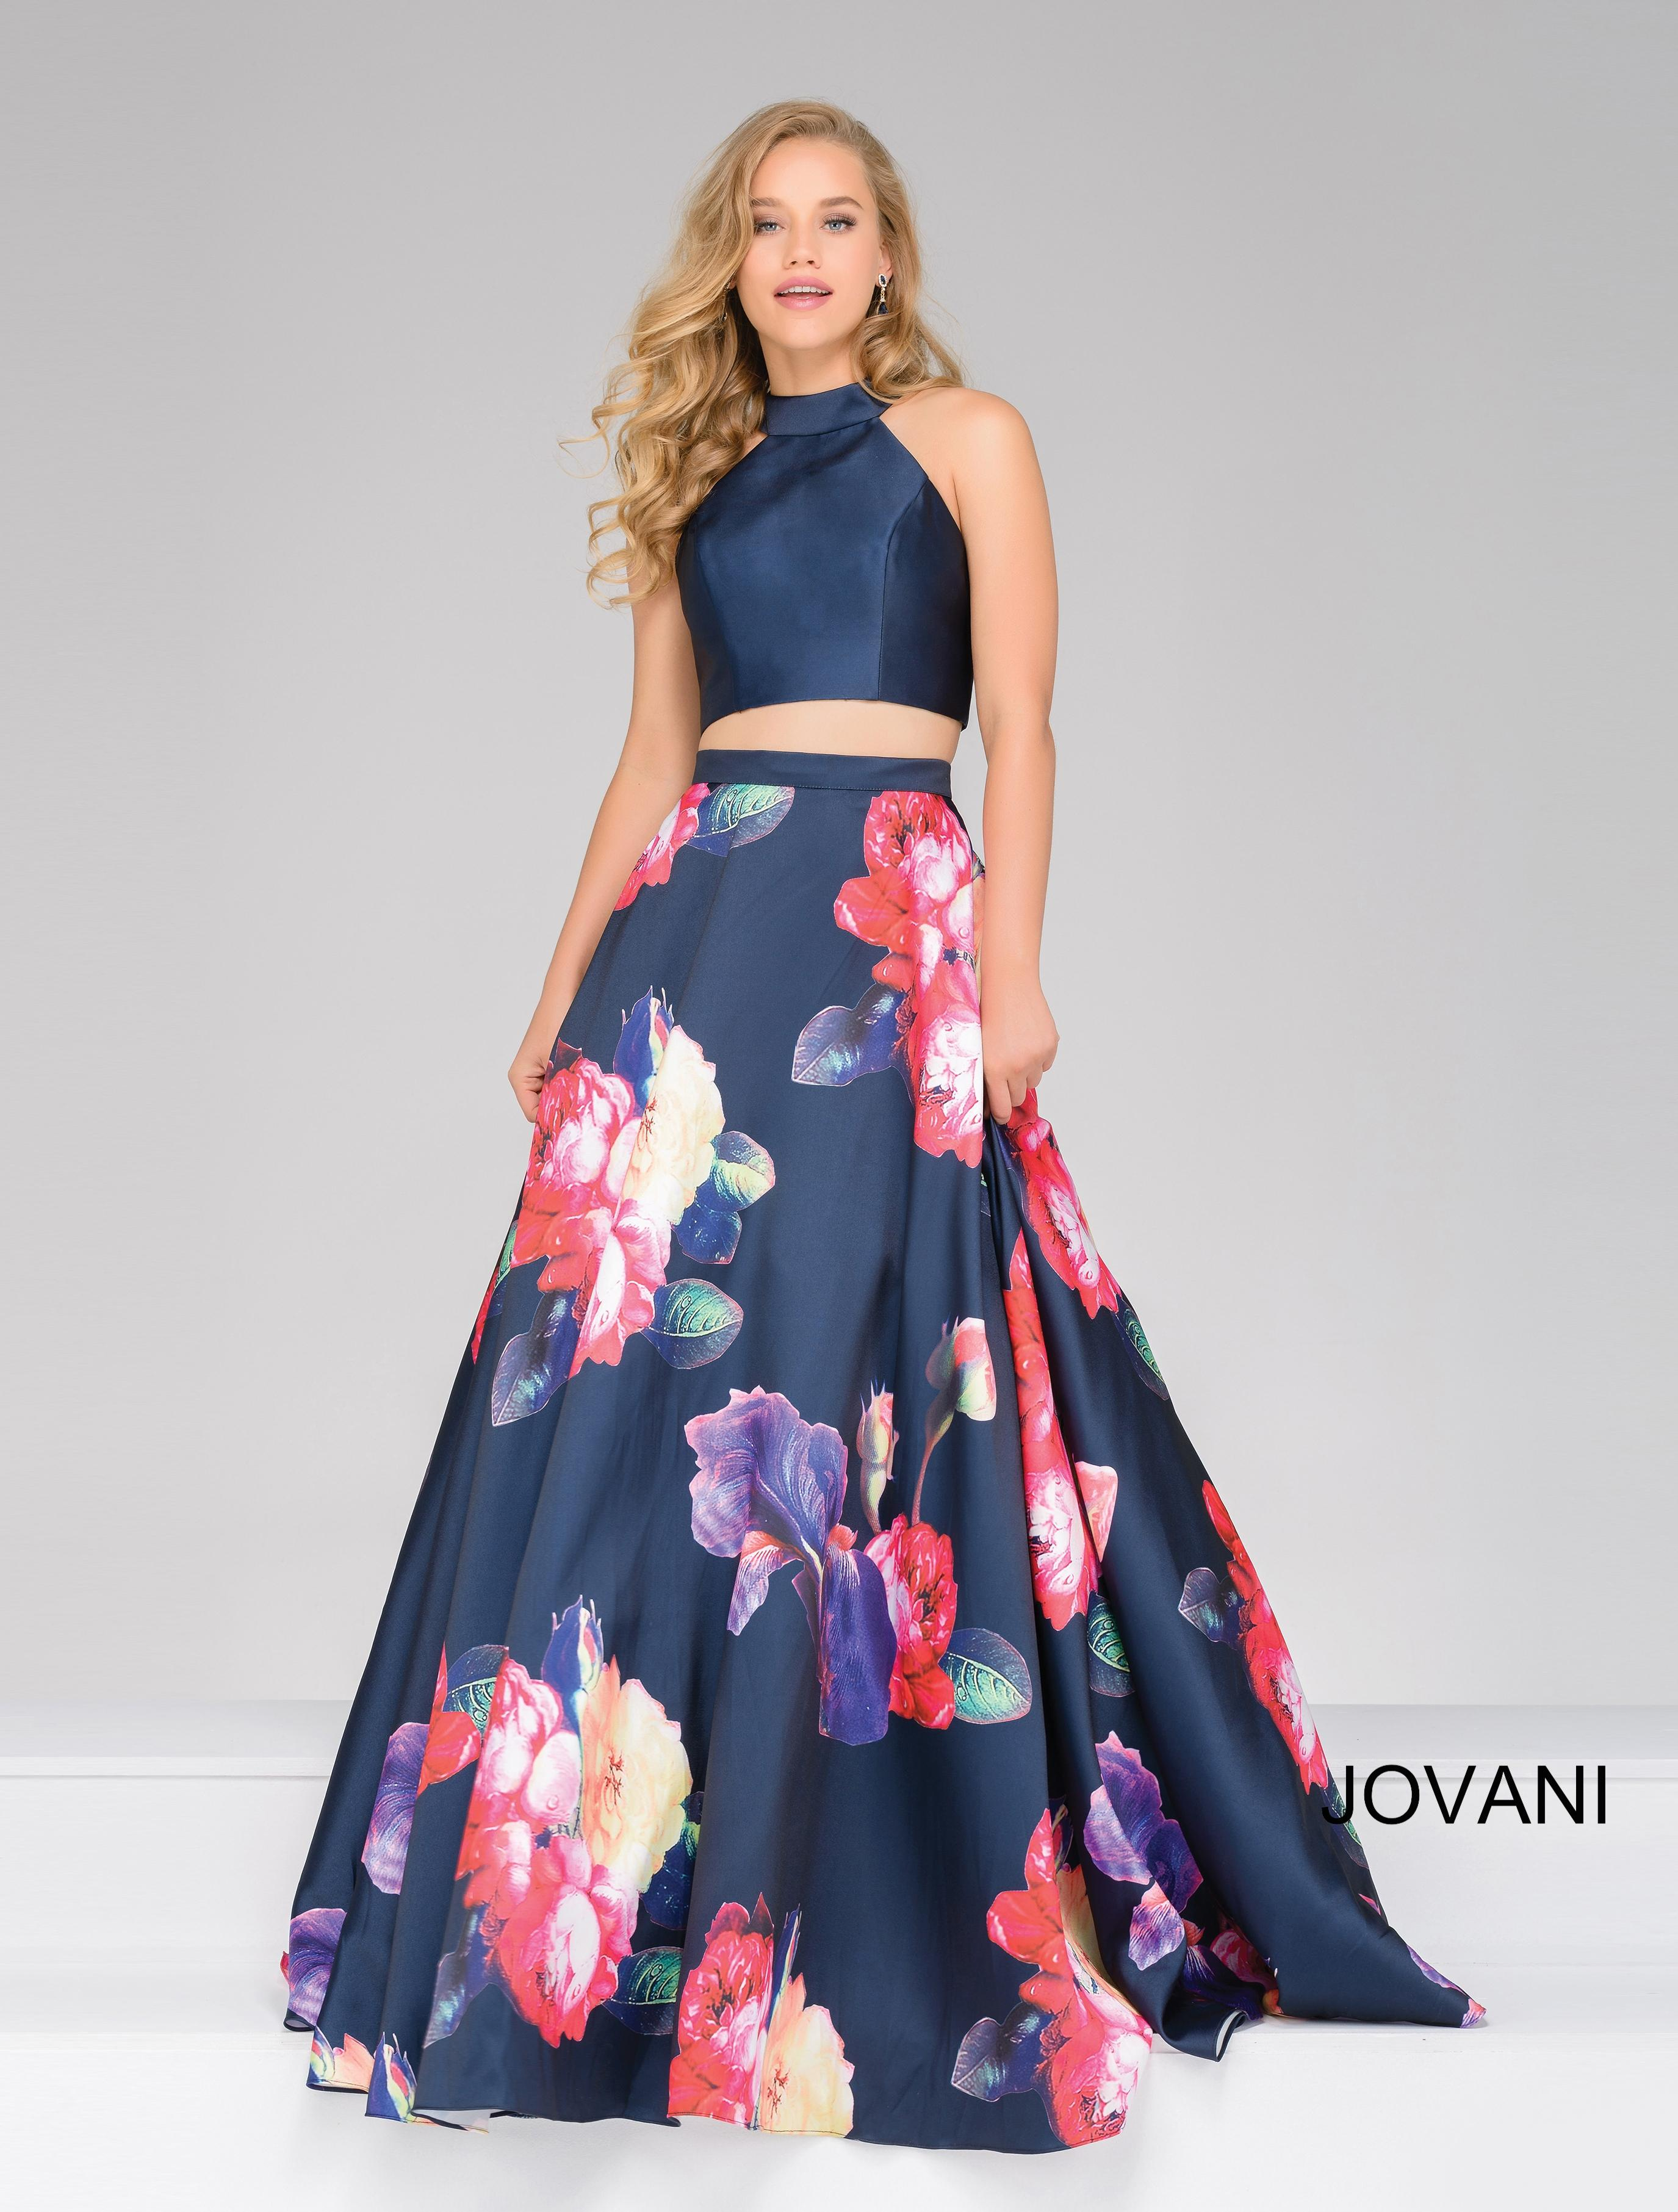 Lyst - Jovani Two-piece Floral Ball Gown in Blue